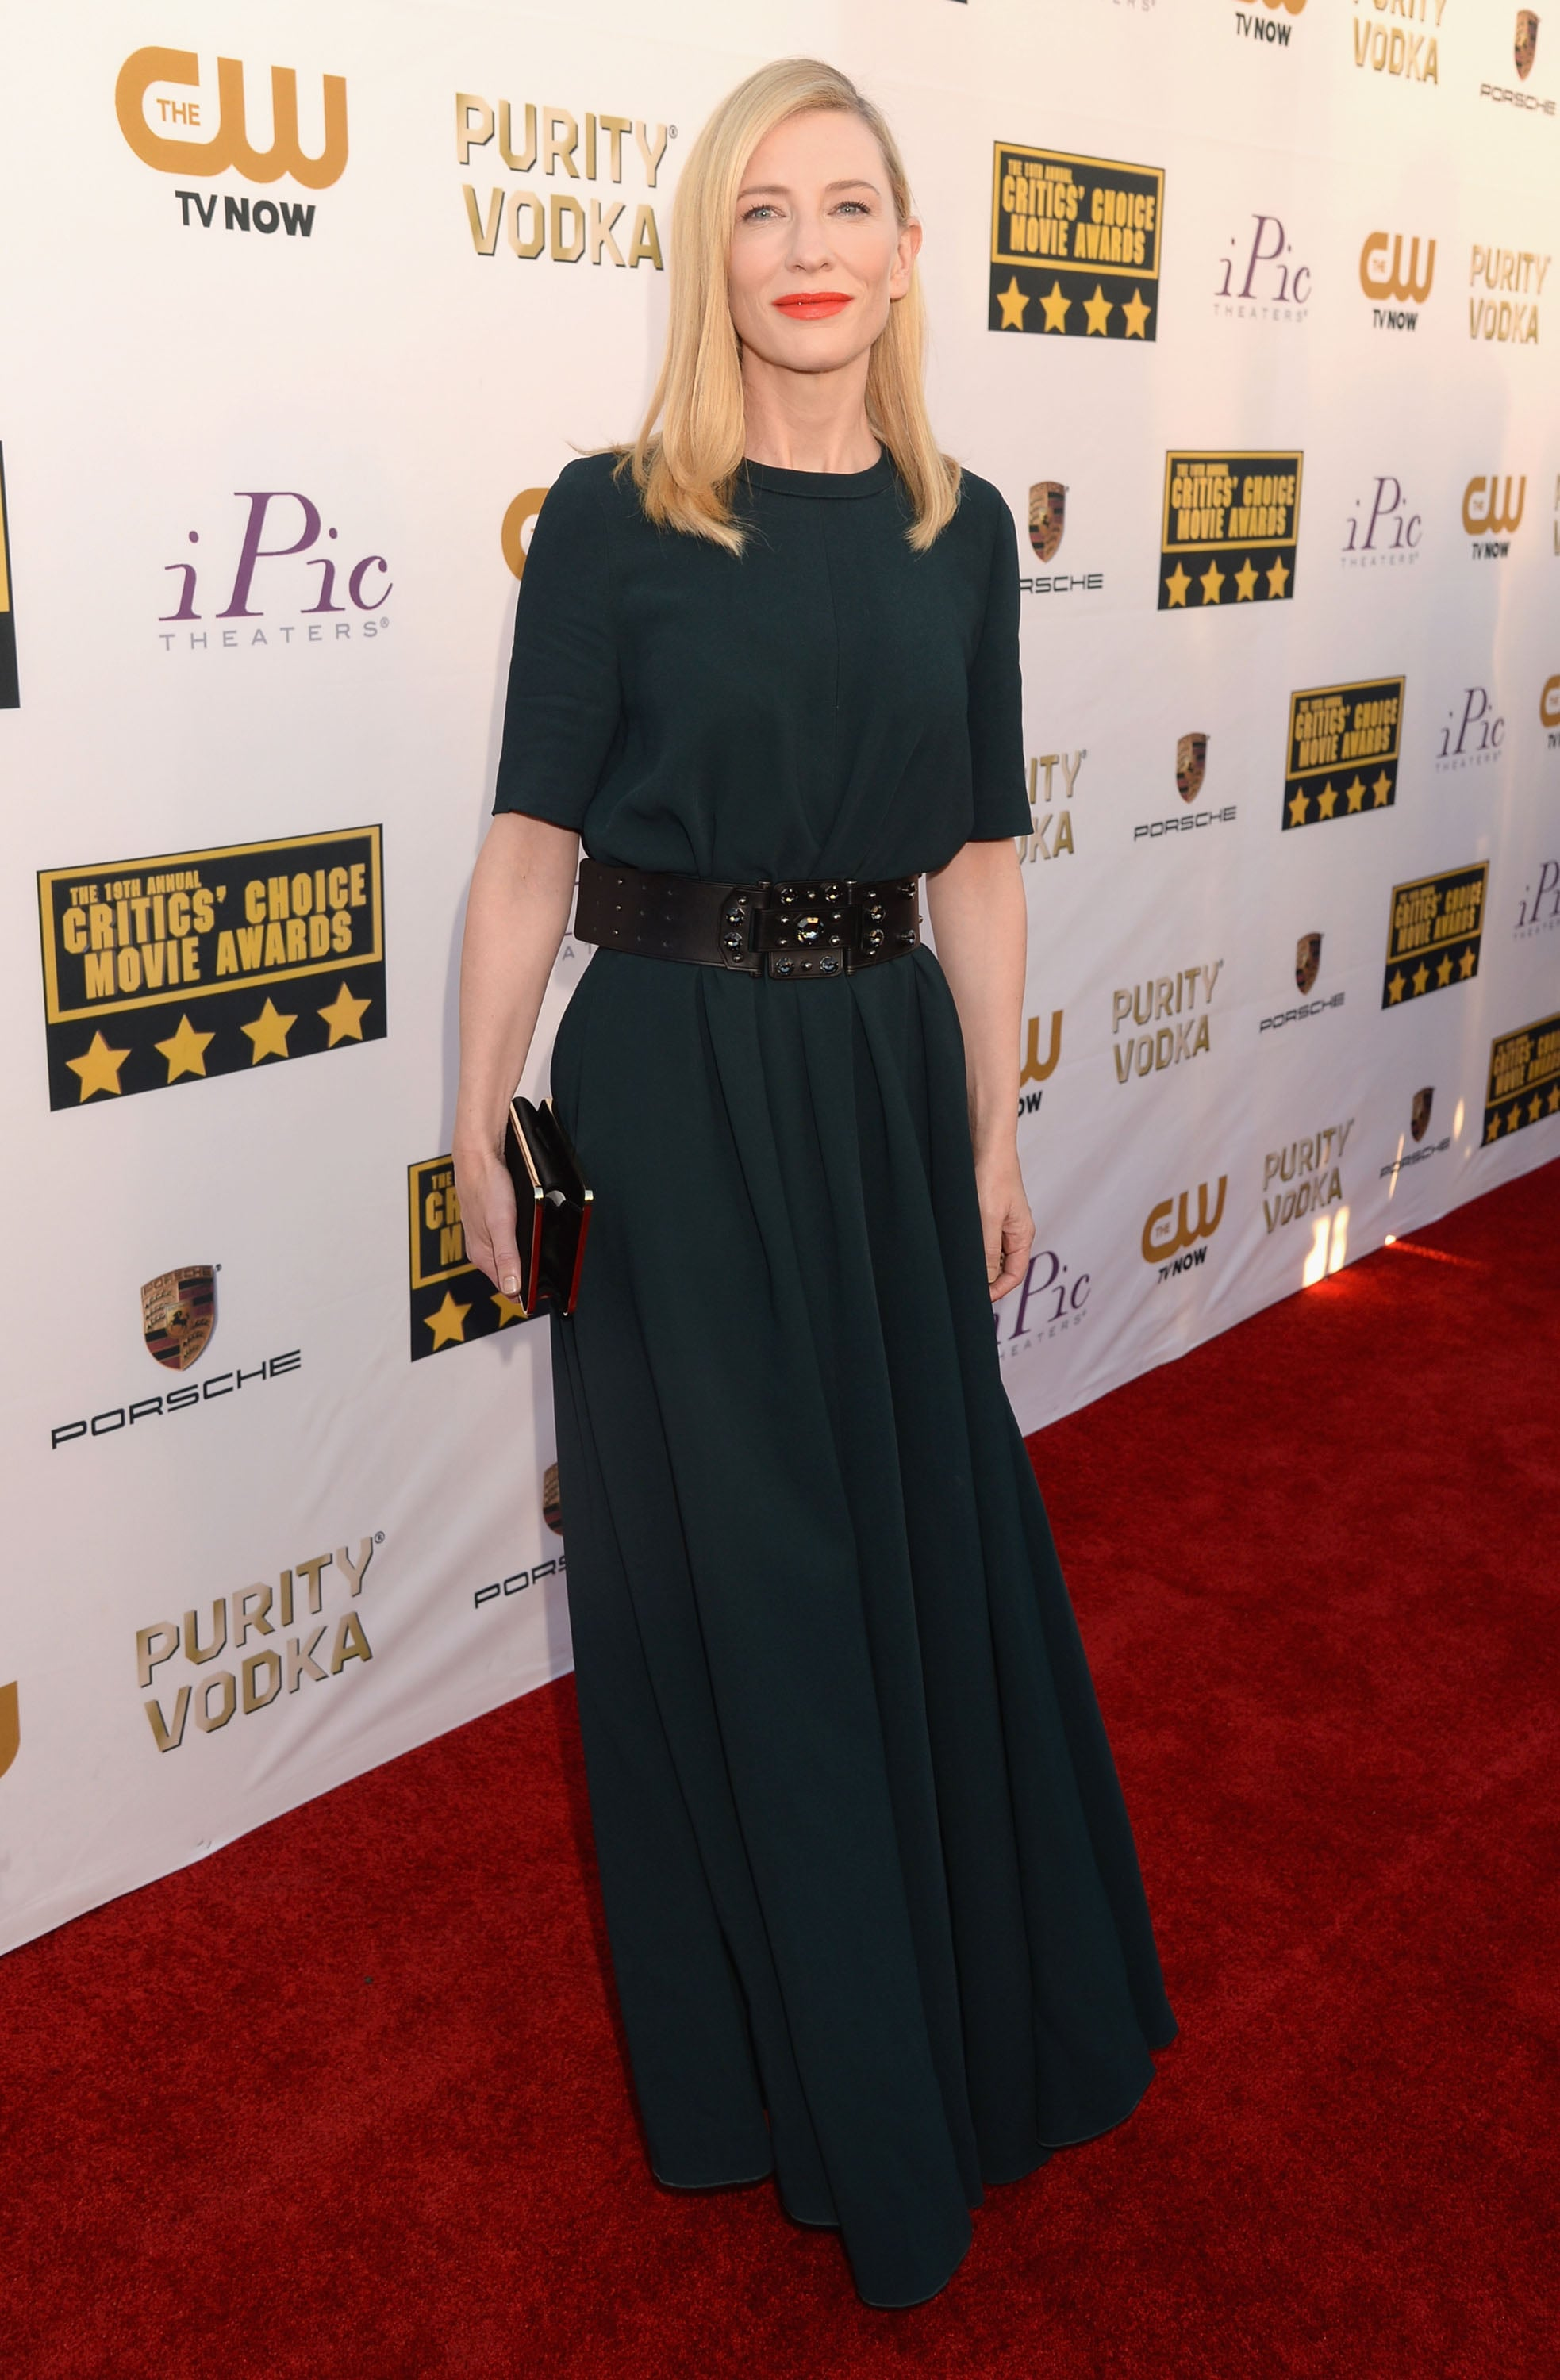 Cate Blanchett at the Critics' Choice Awards 2014